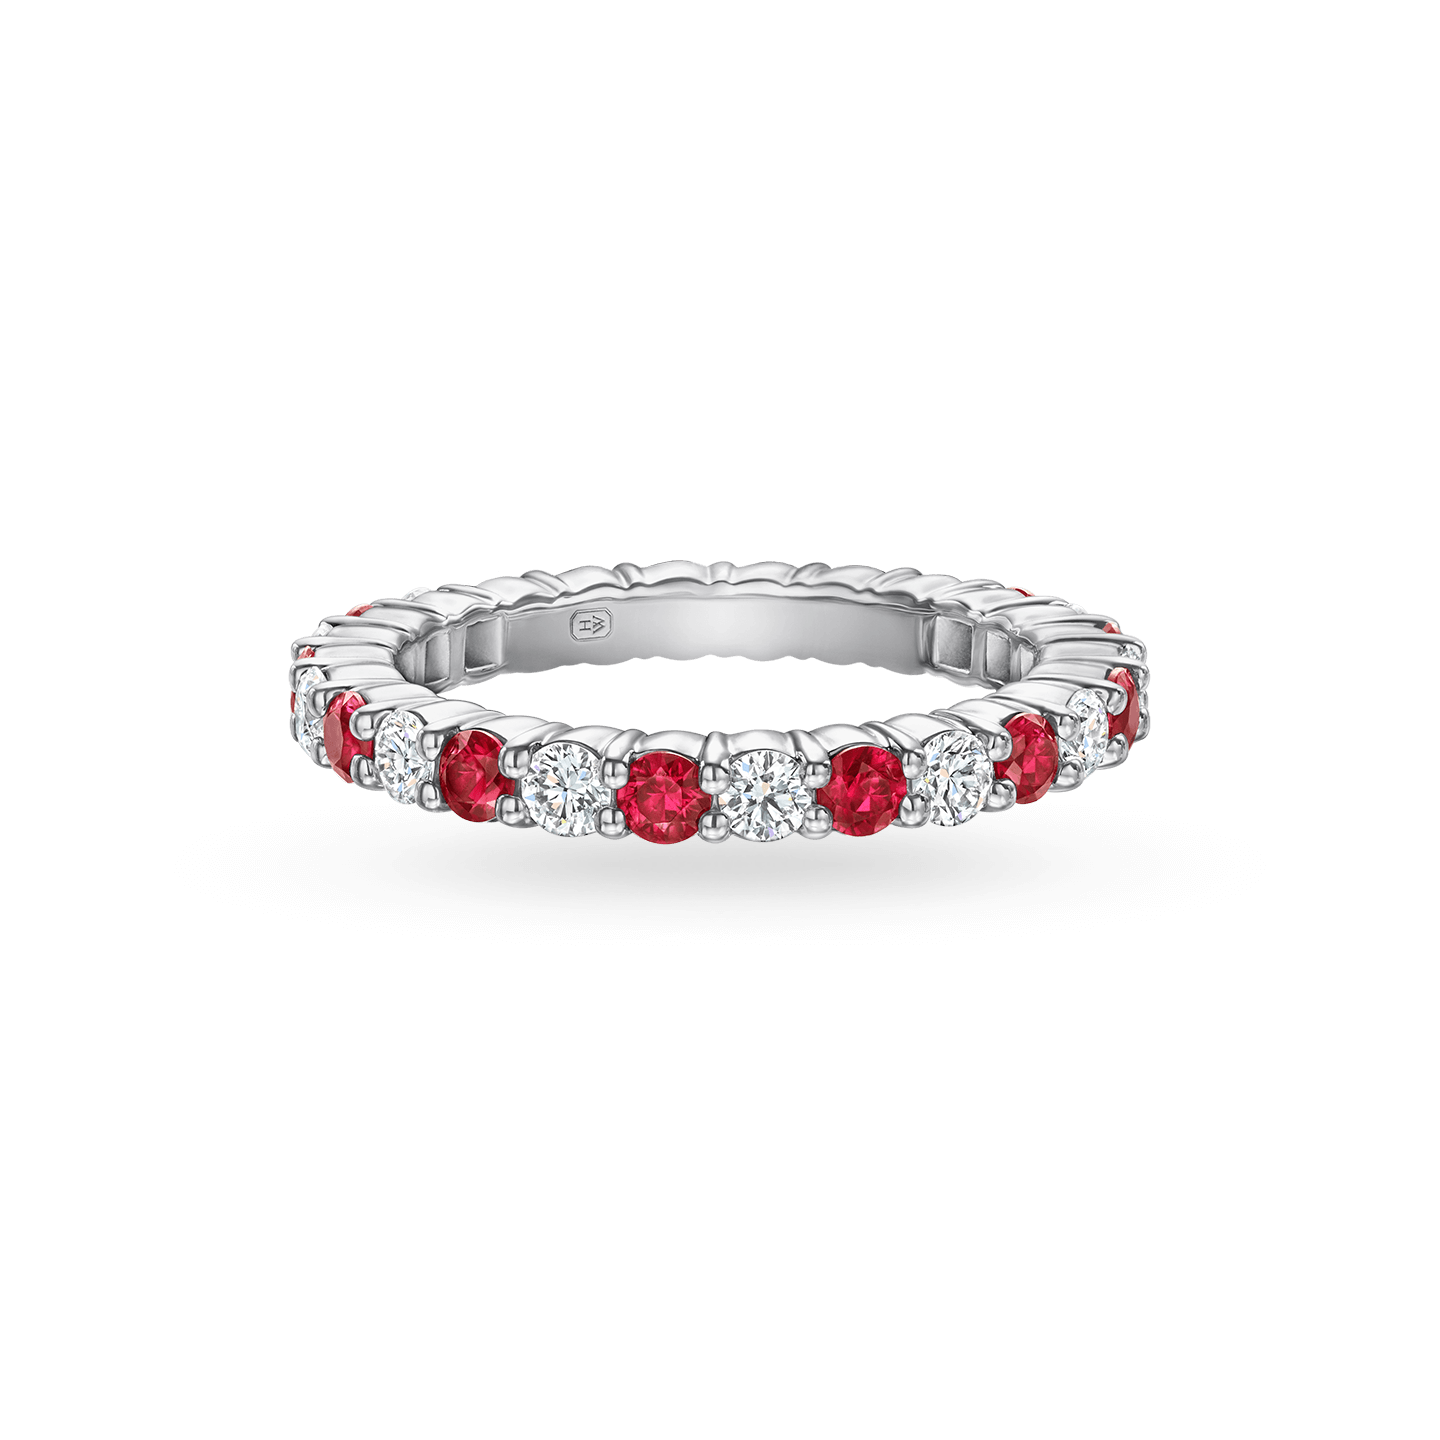 Prong-Set Round Brilliant Ruby and Diamond Wedding Band, Product Image 1